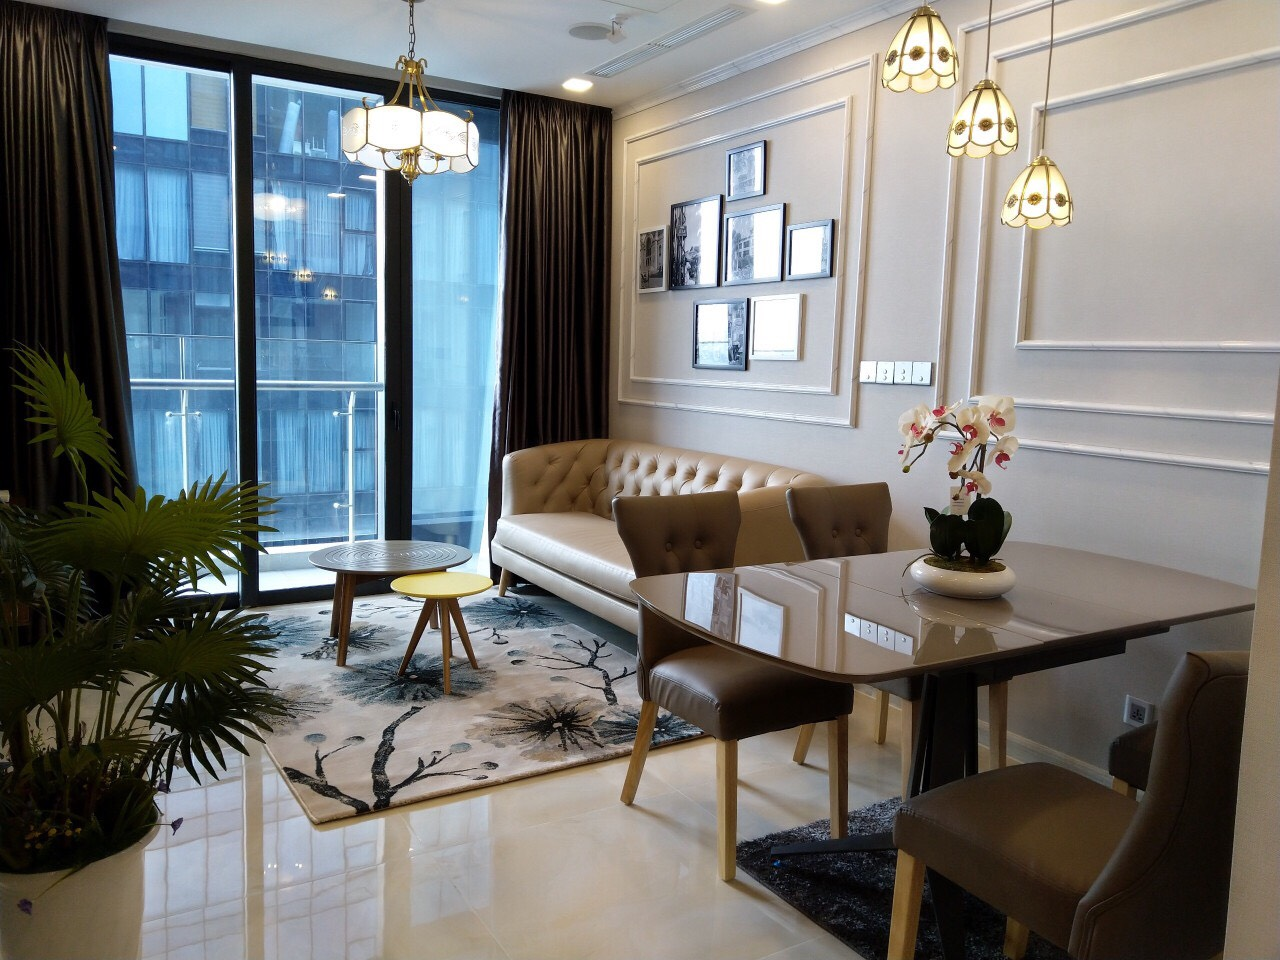 vinhomes golden river apartment for rent in district 1 hcmc D1021122 (7)